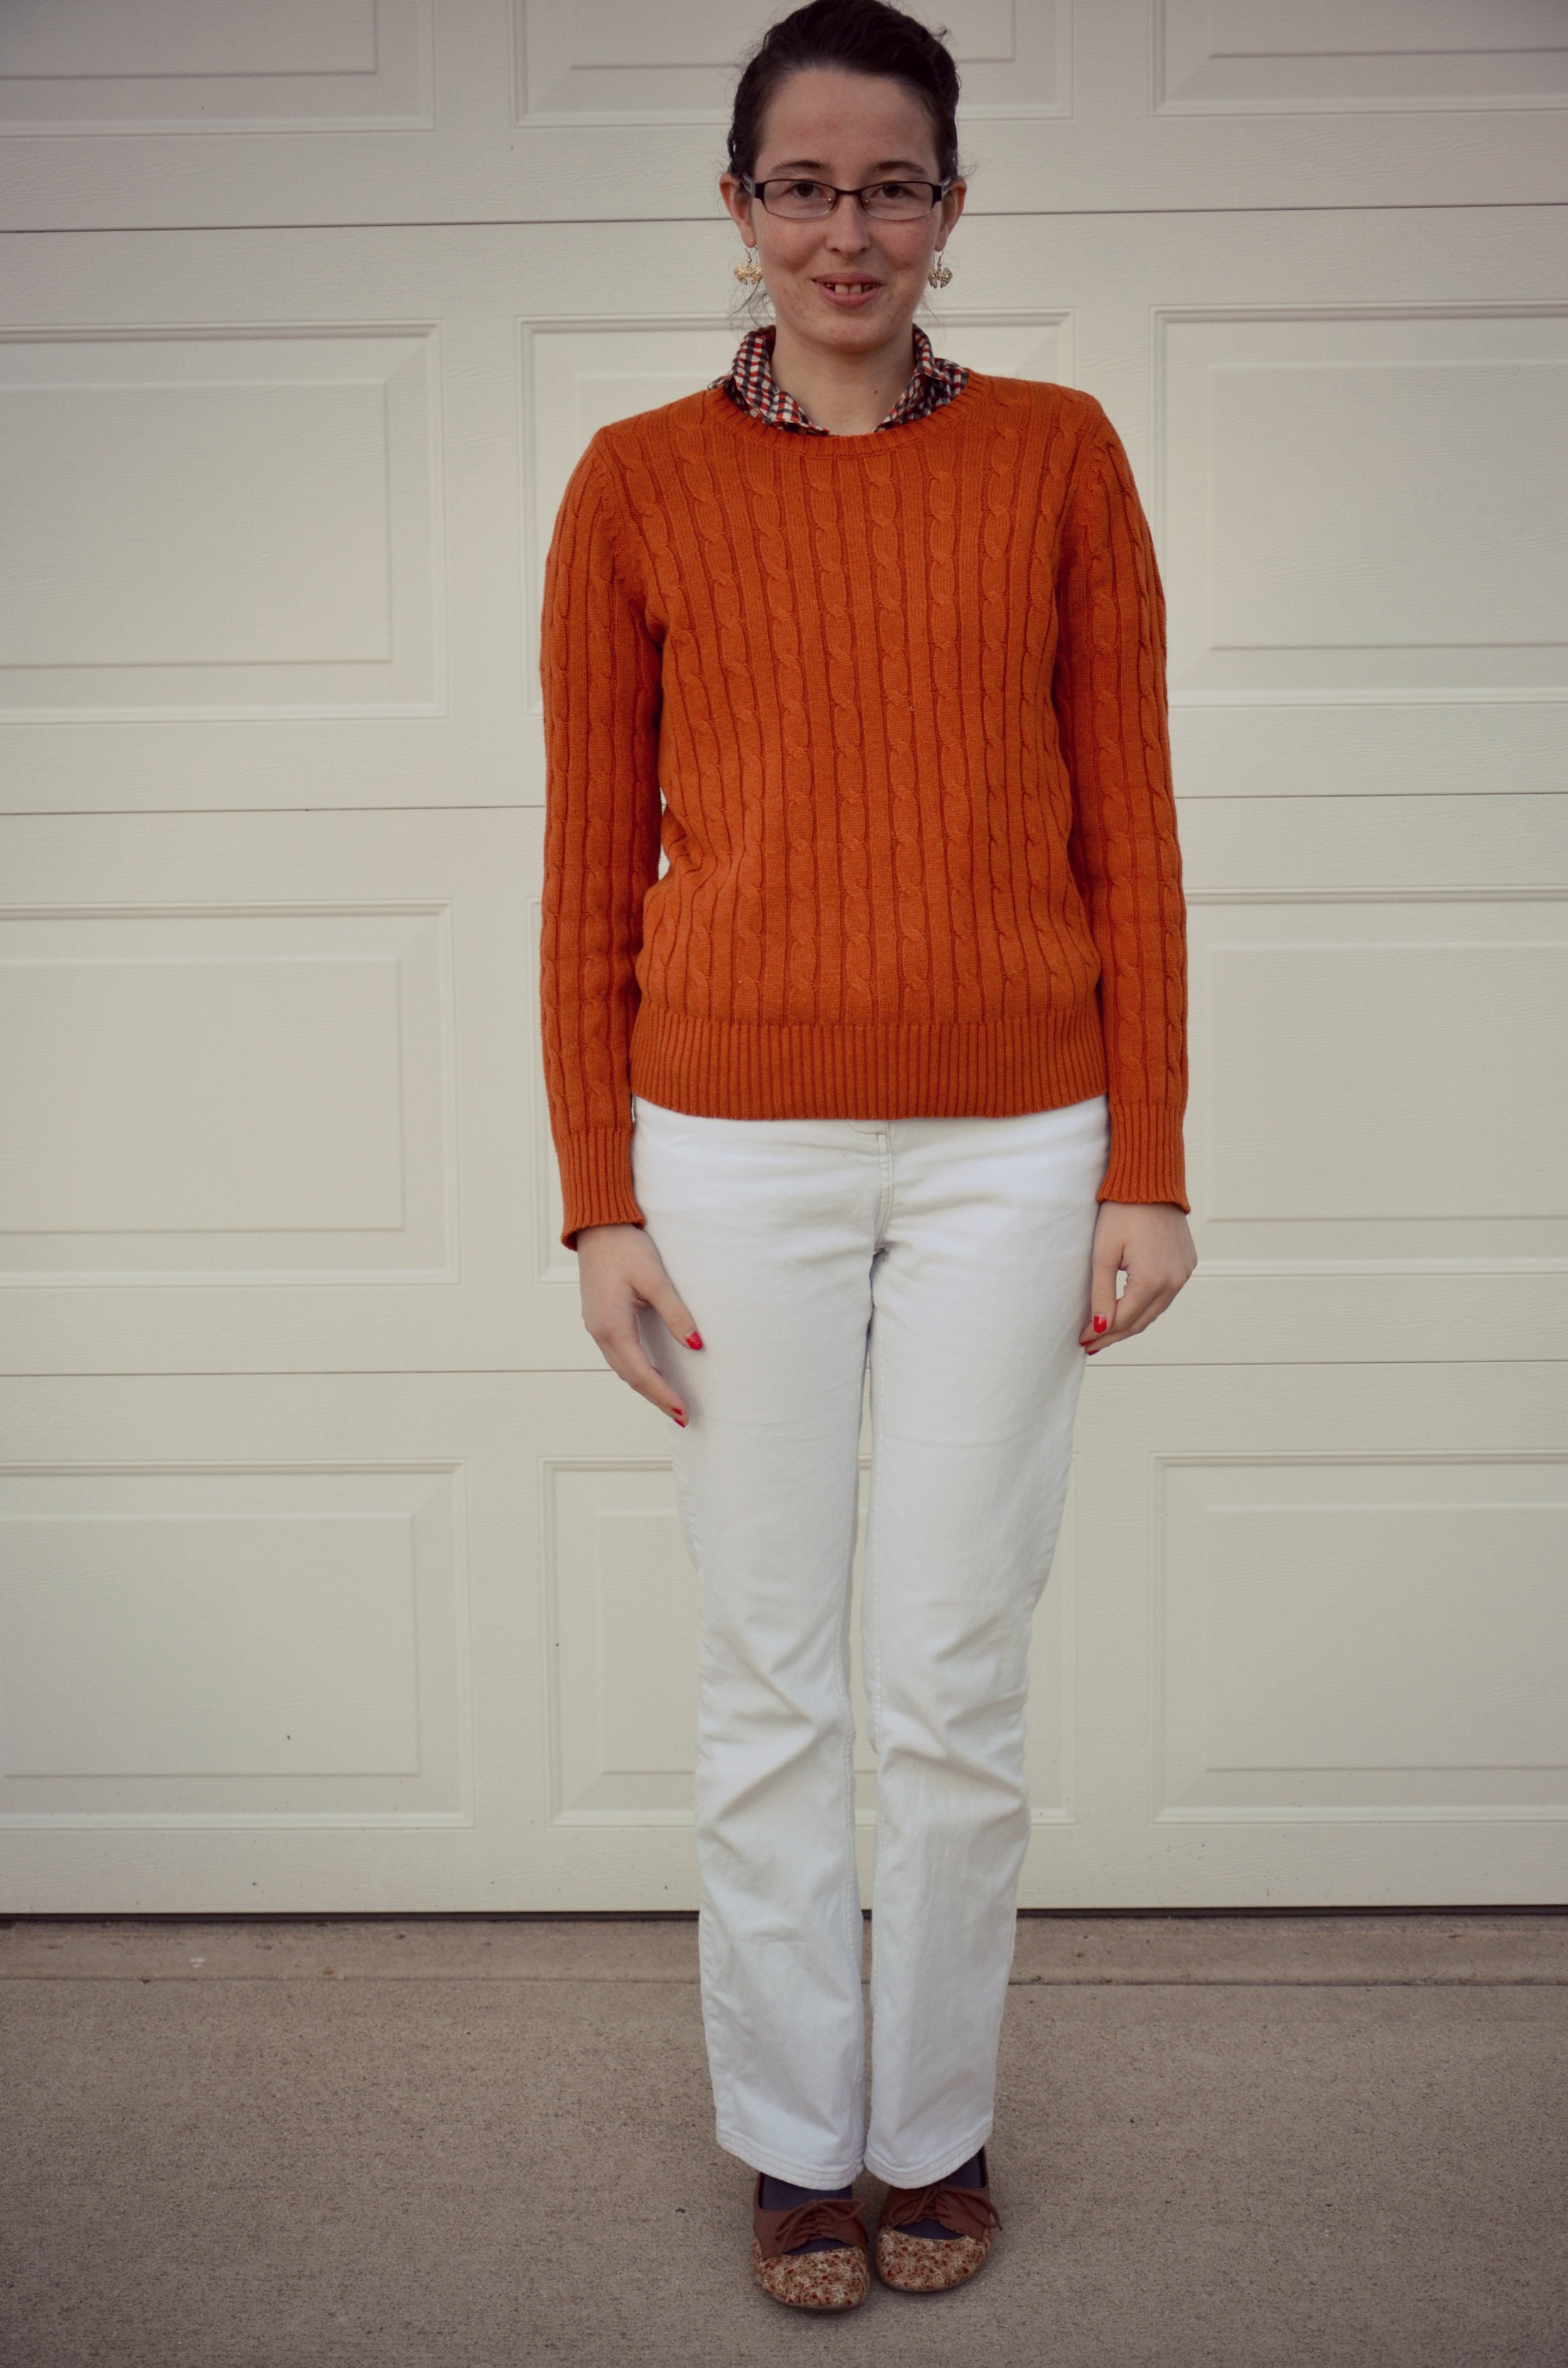 What I Wore - Time is Love ❘ Modest ❘ Fashion ❘ Fall ❘ Wearing White Jeans in the Fall ❘ Boden